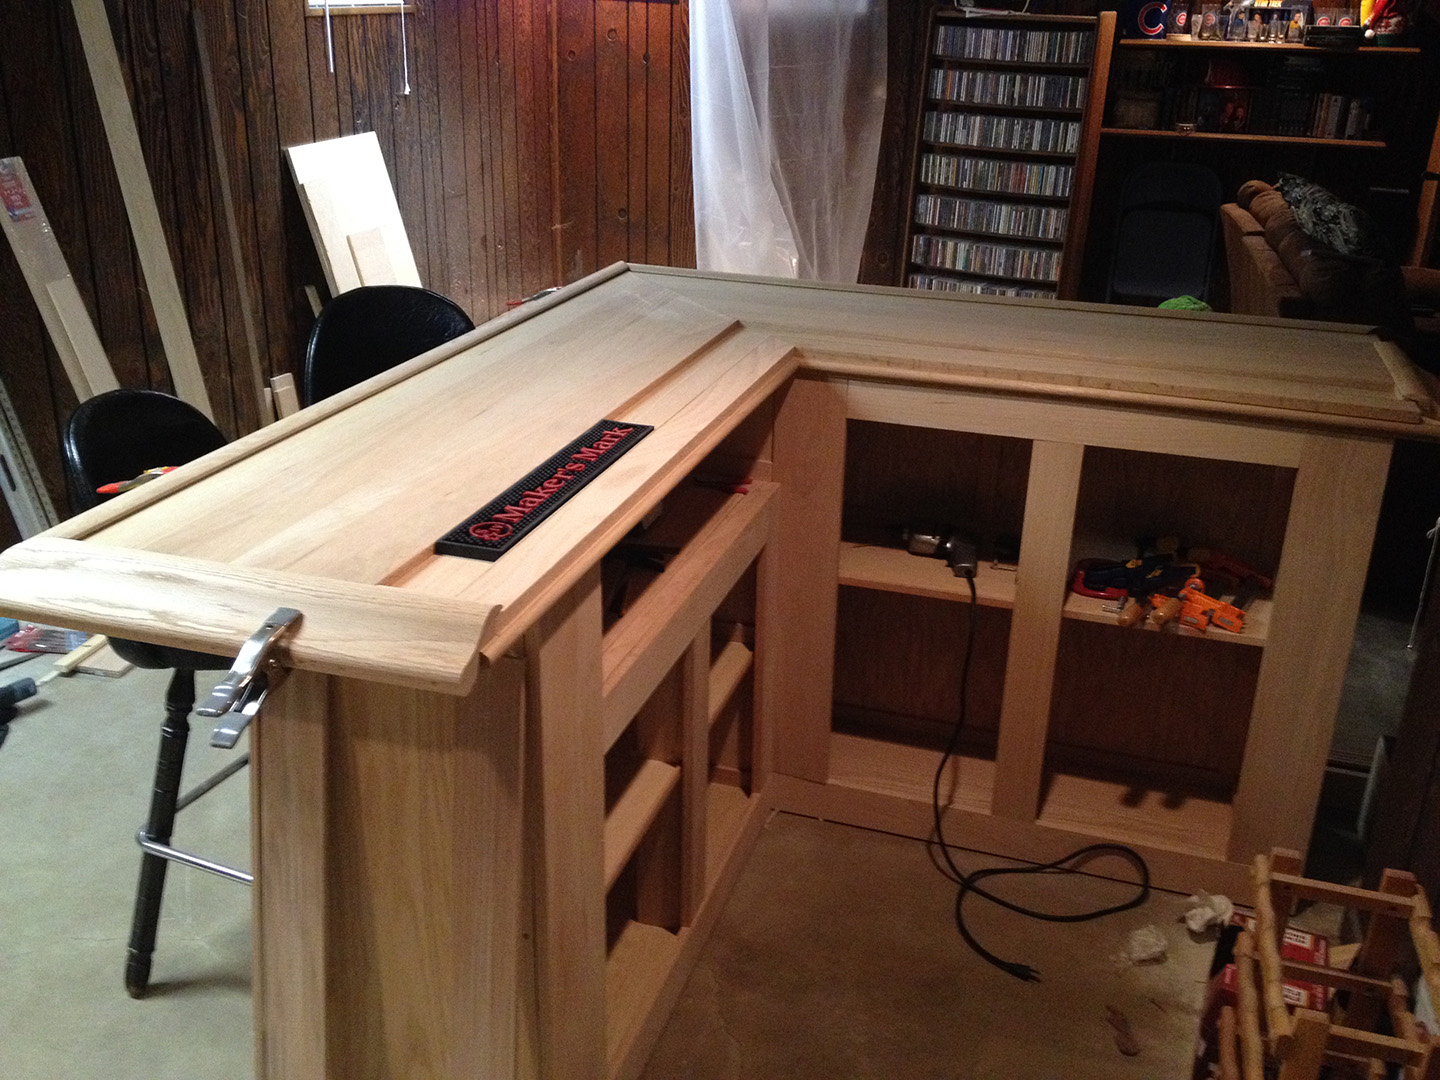 Diy how to build your own oak home bar john everson - Building a new home ideas ...